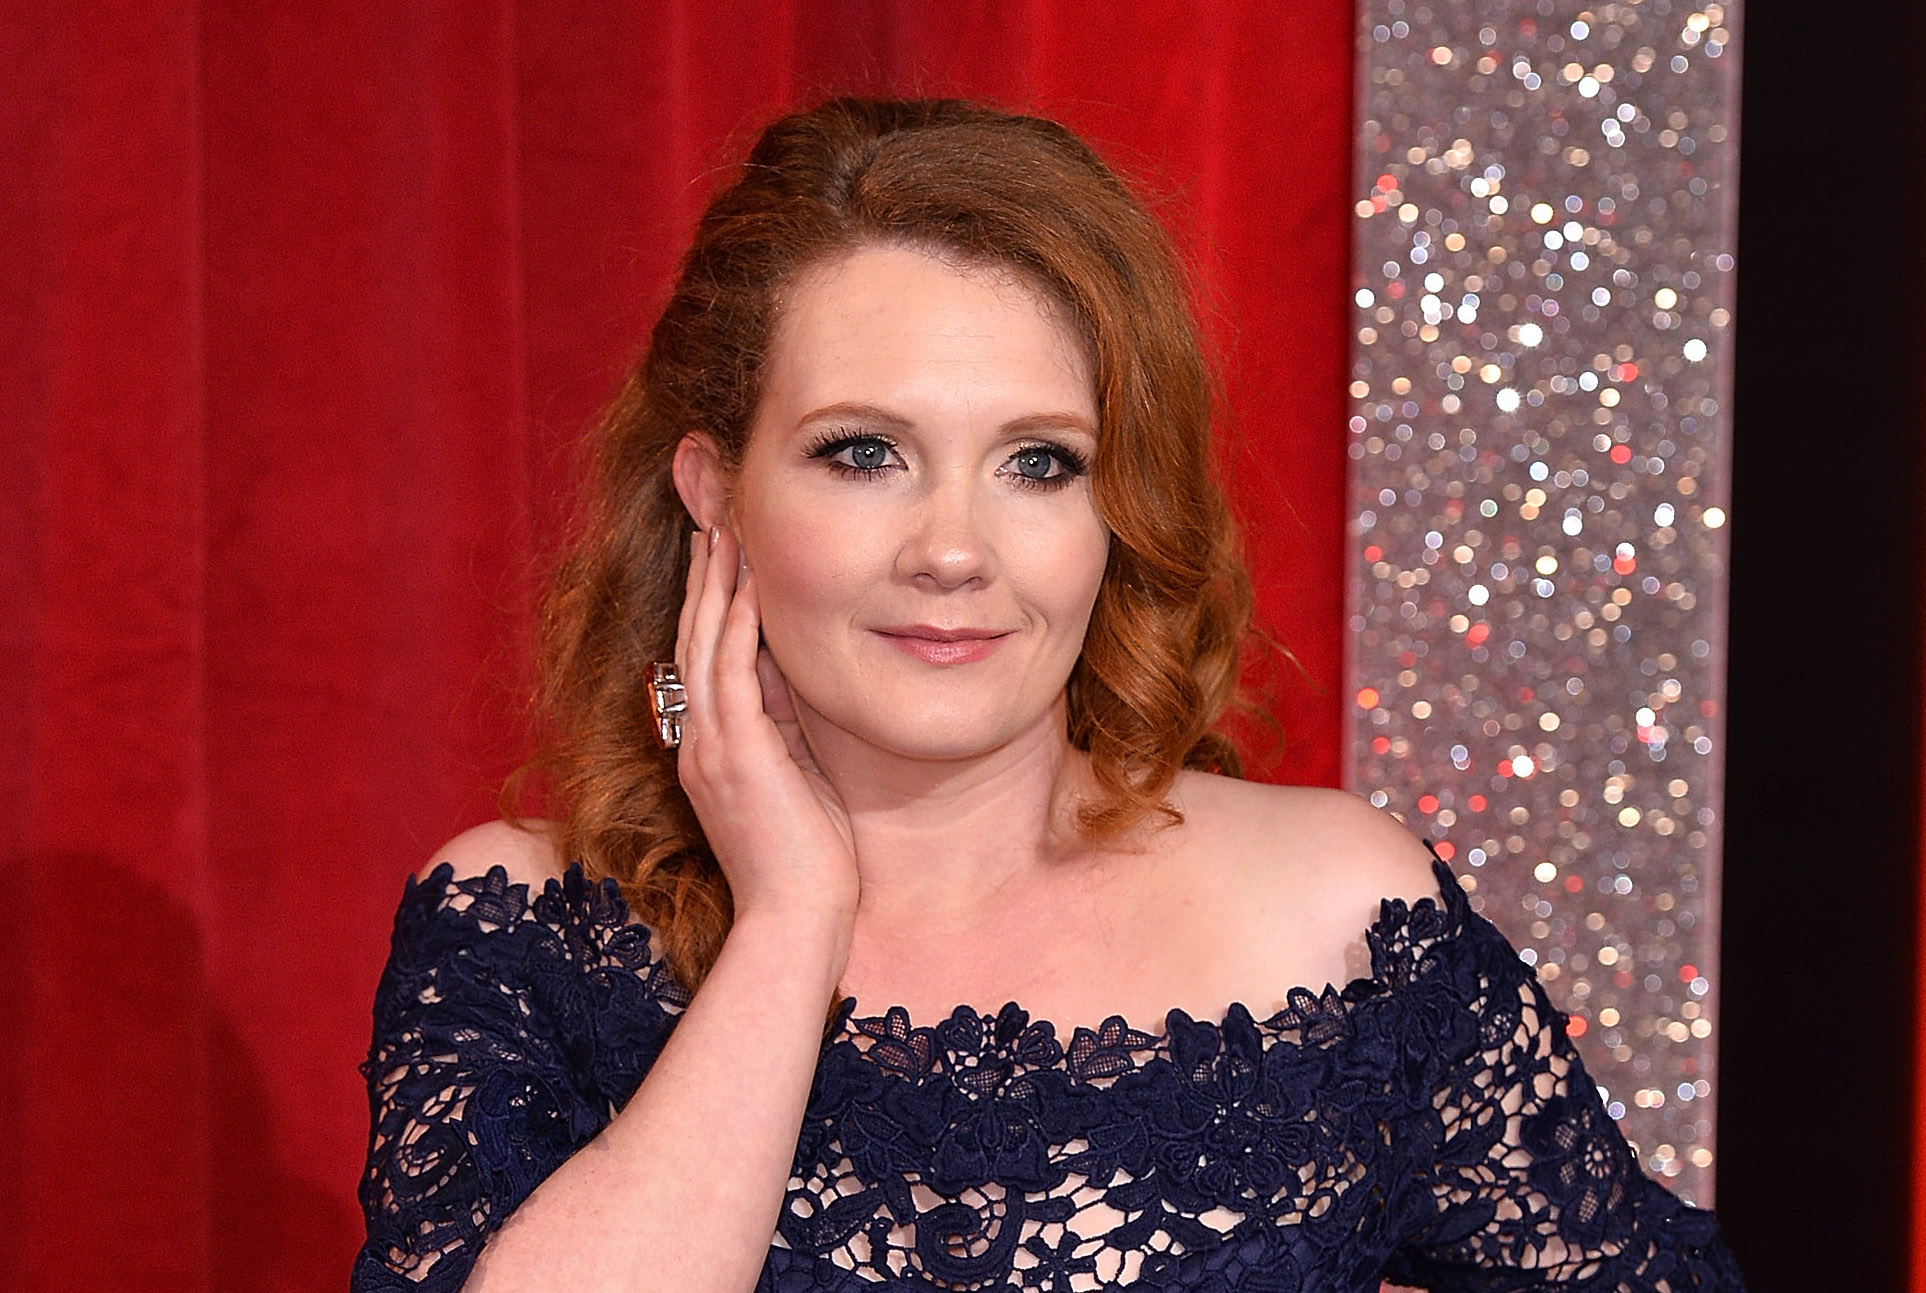 Jennie McAlpine - I'm a Celebrity? Getty Images, TG